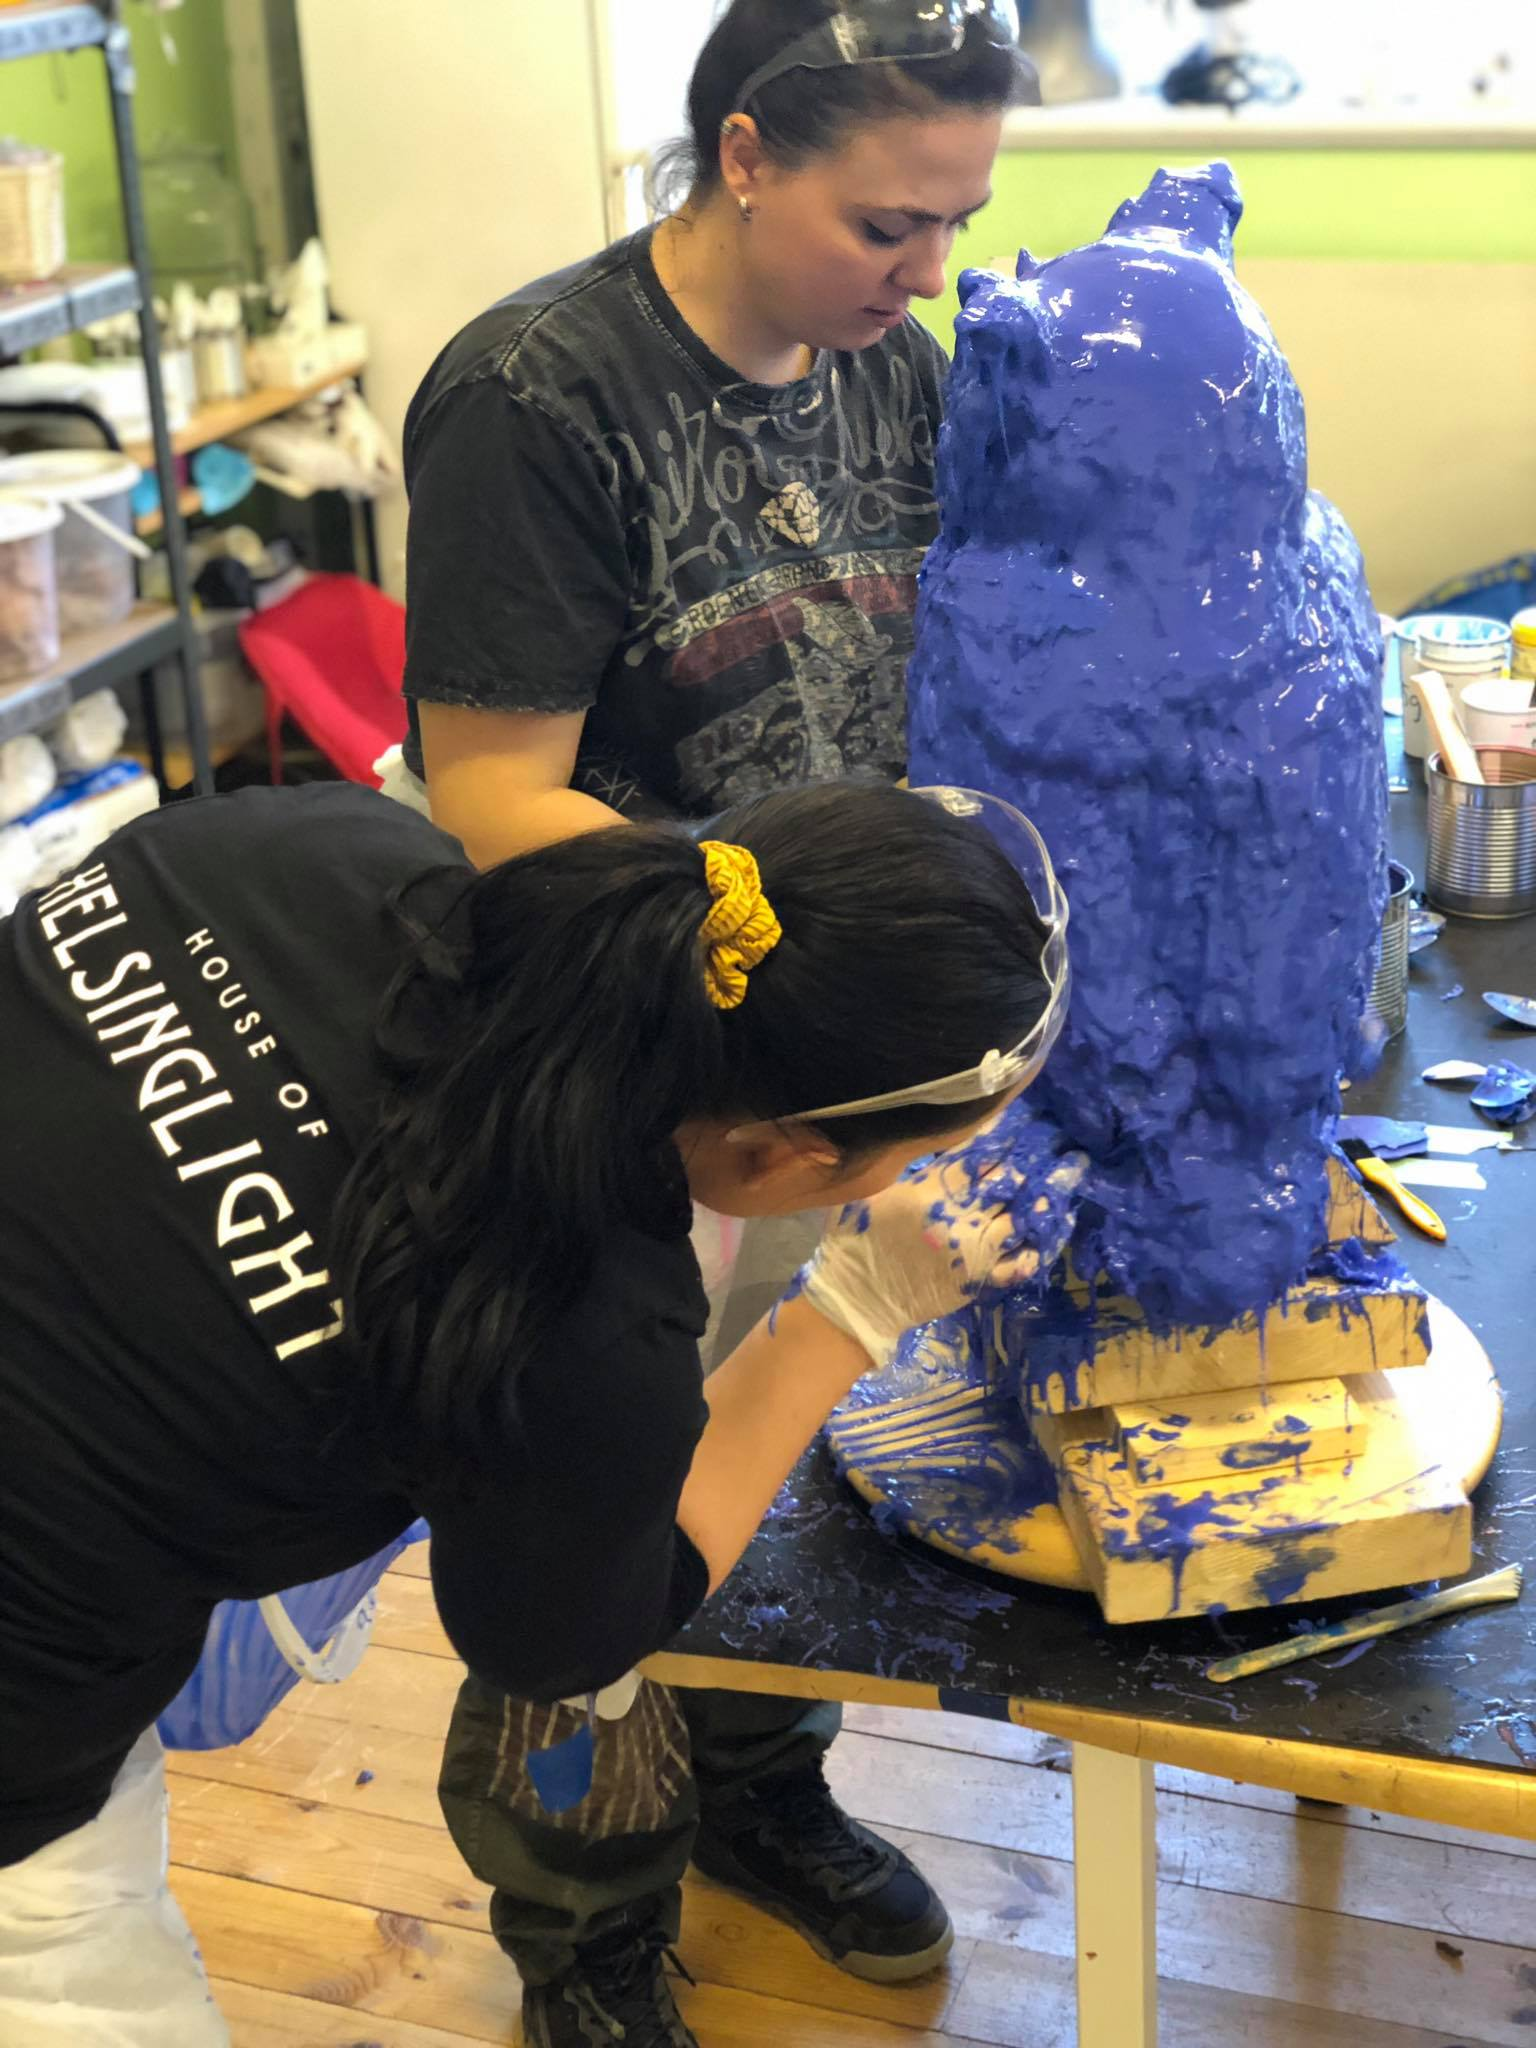 Petra Shara Stoor, FX Artist and Creative Director of Helsinglight helped Amfiria out in the process of mold making and casting the owl in stone.